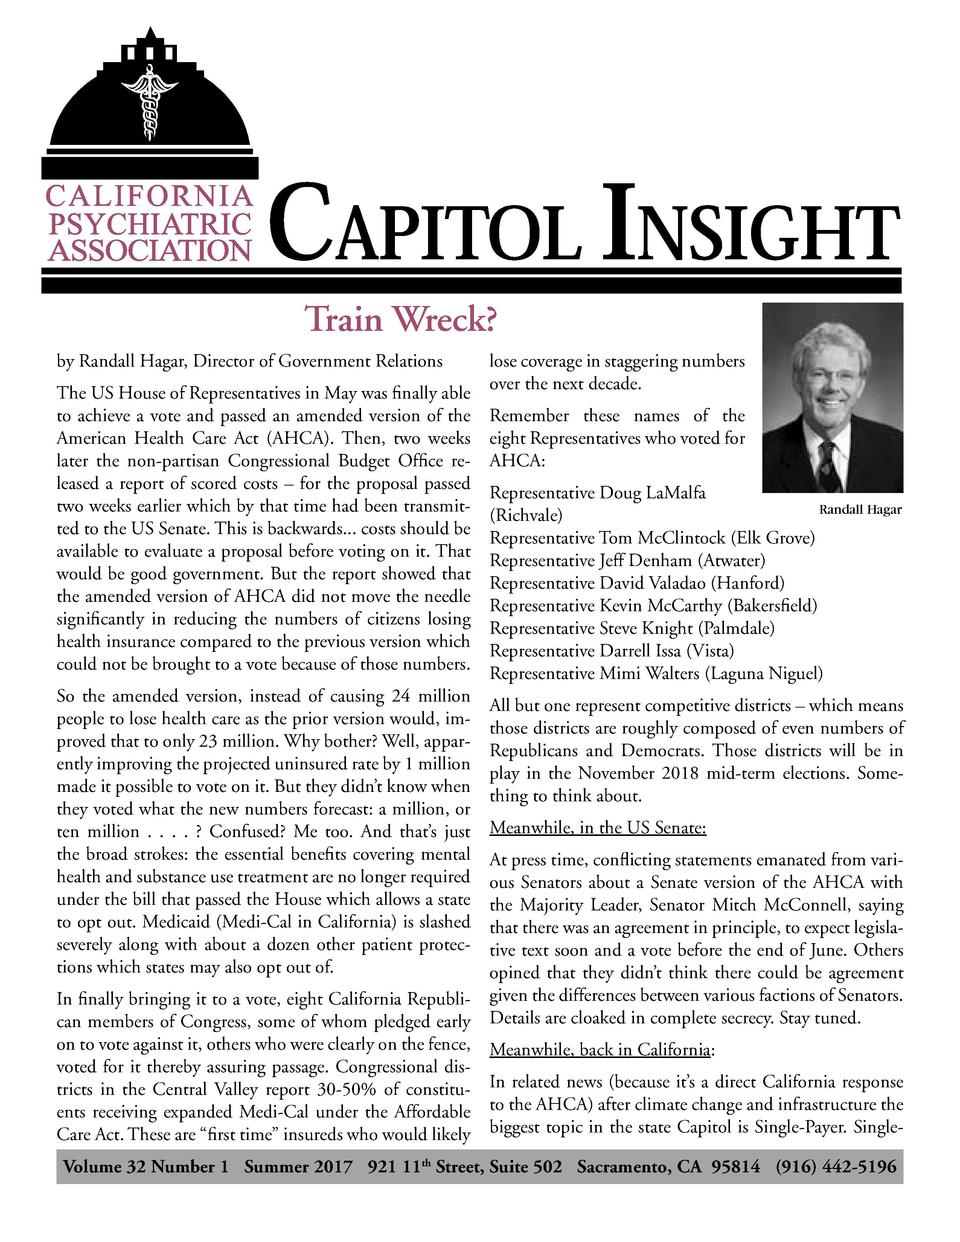 CAPITOL INSIGHT Train Wreck   by Randall Hagar, Director of Government Relations The US House of Representatives in May wa...